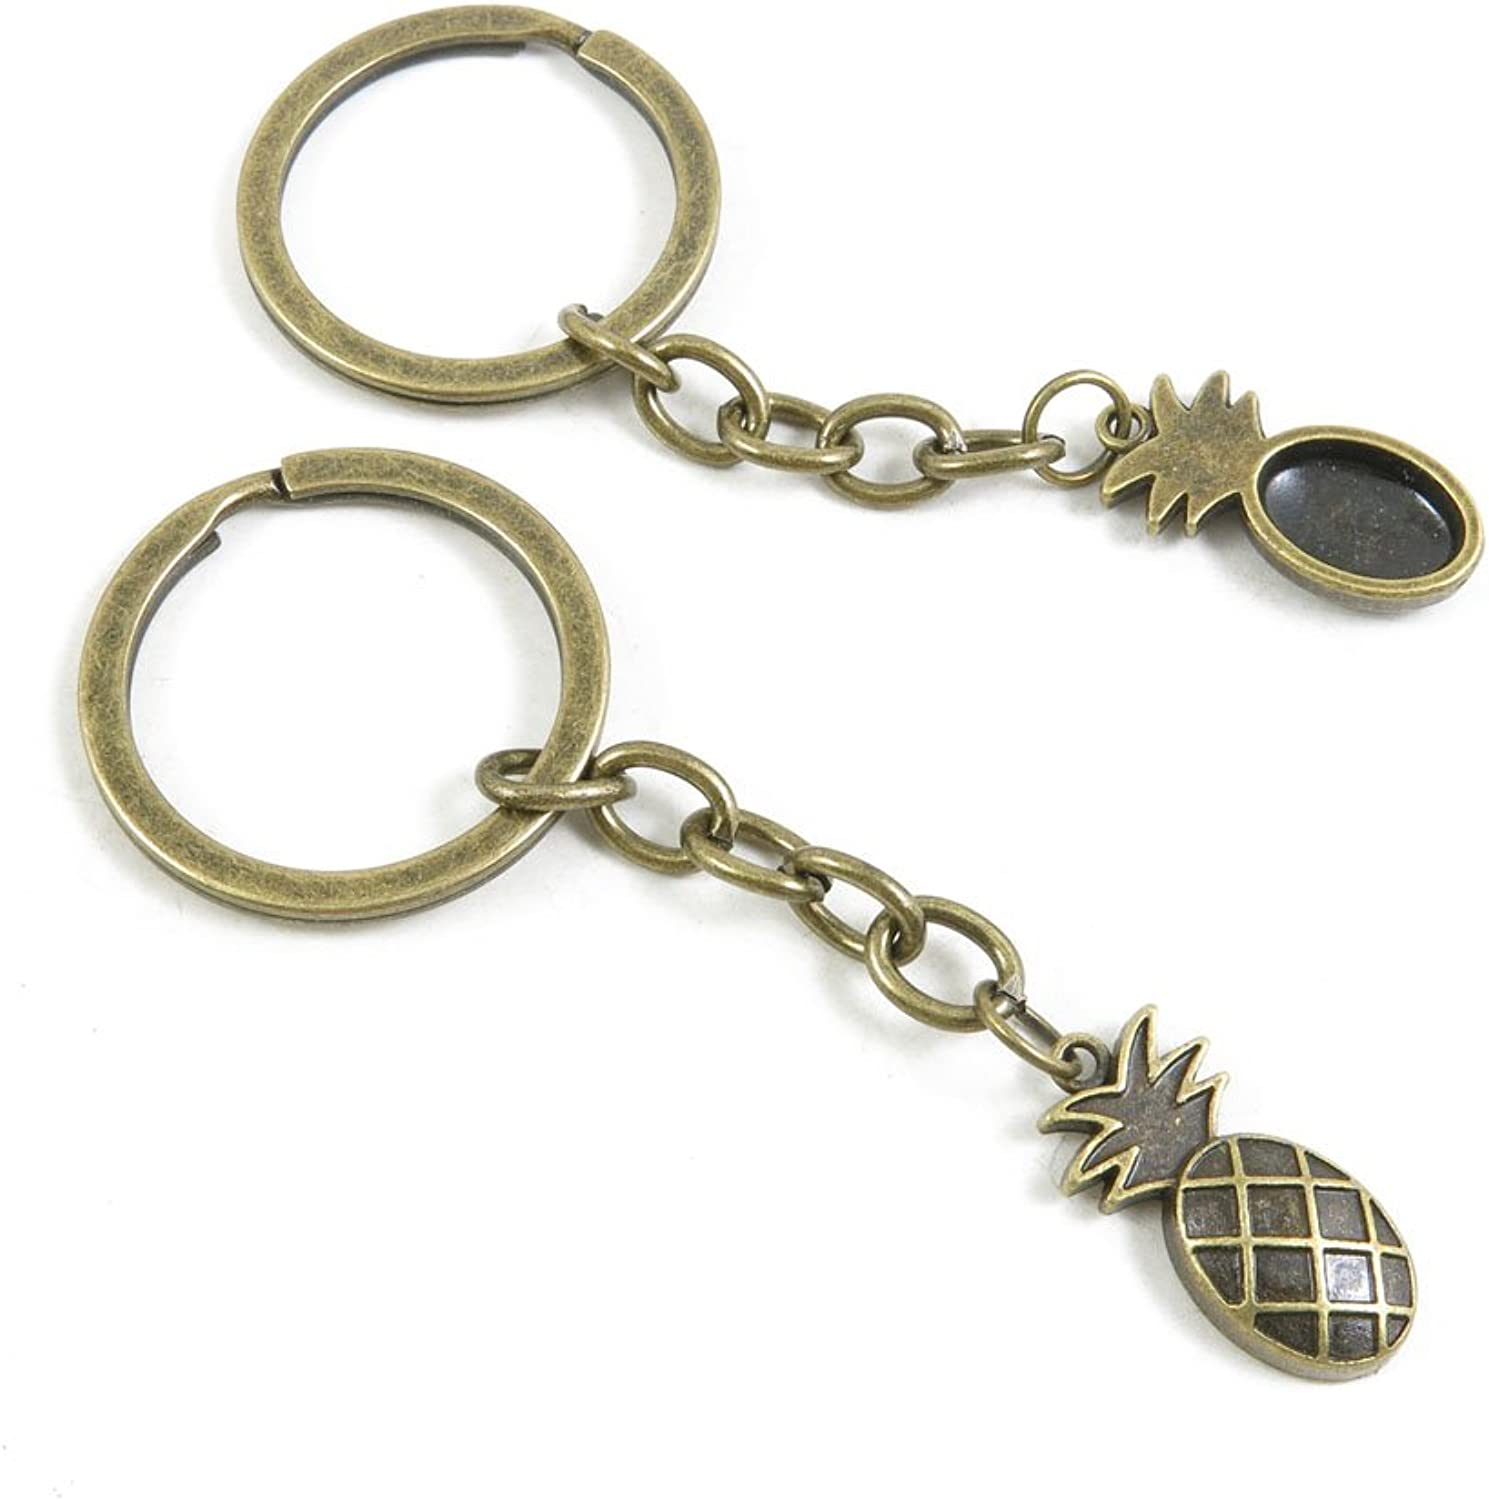 190 Pieces Fashion Jewelry Keyring Keychain Door Car Key Tag Ring Chain Supplier Supply Wholesale Bulk Lots Q6WH8 Pineapple